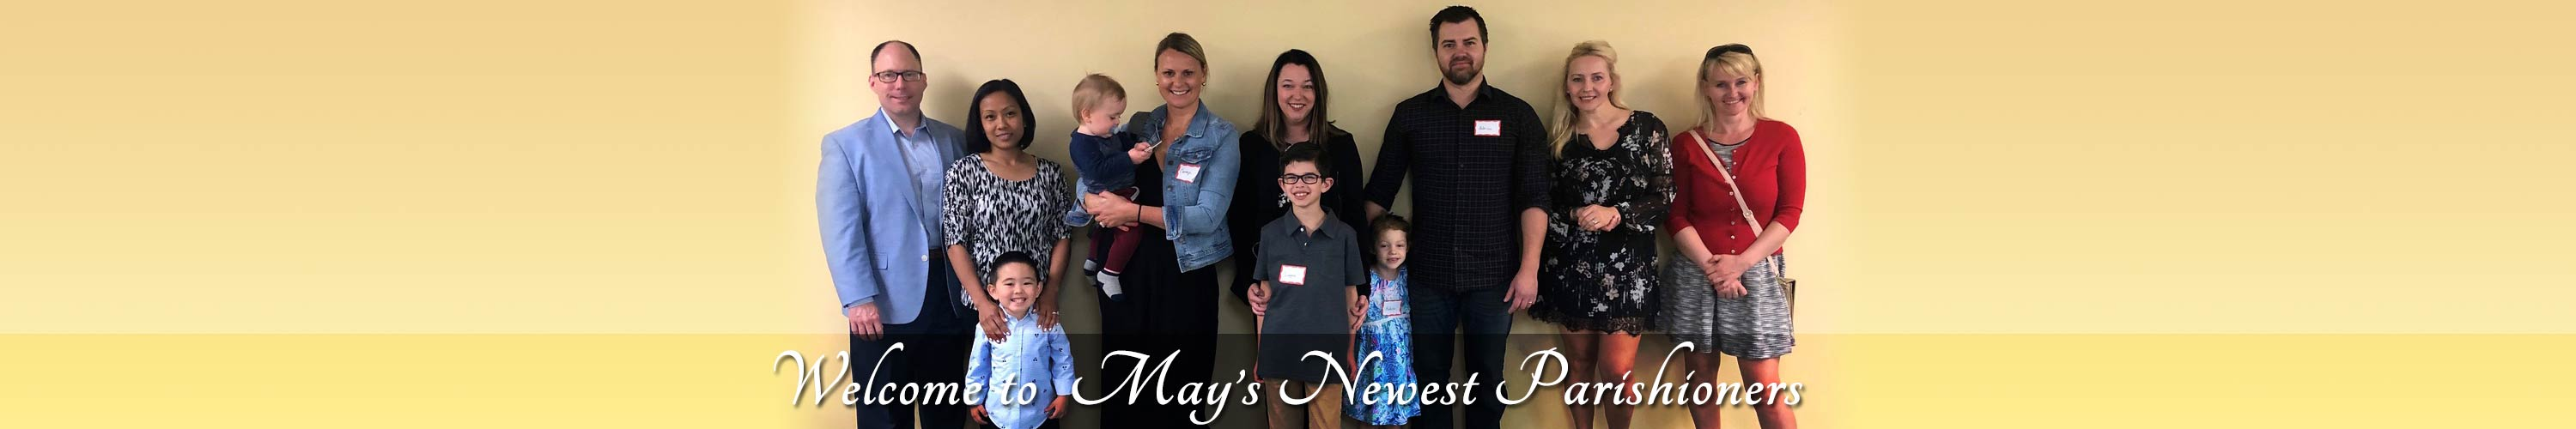 Welcome-New-Parishioners-may-2019